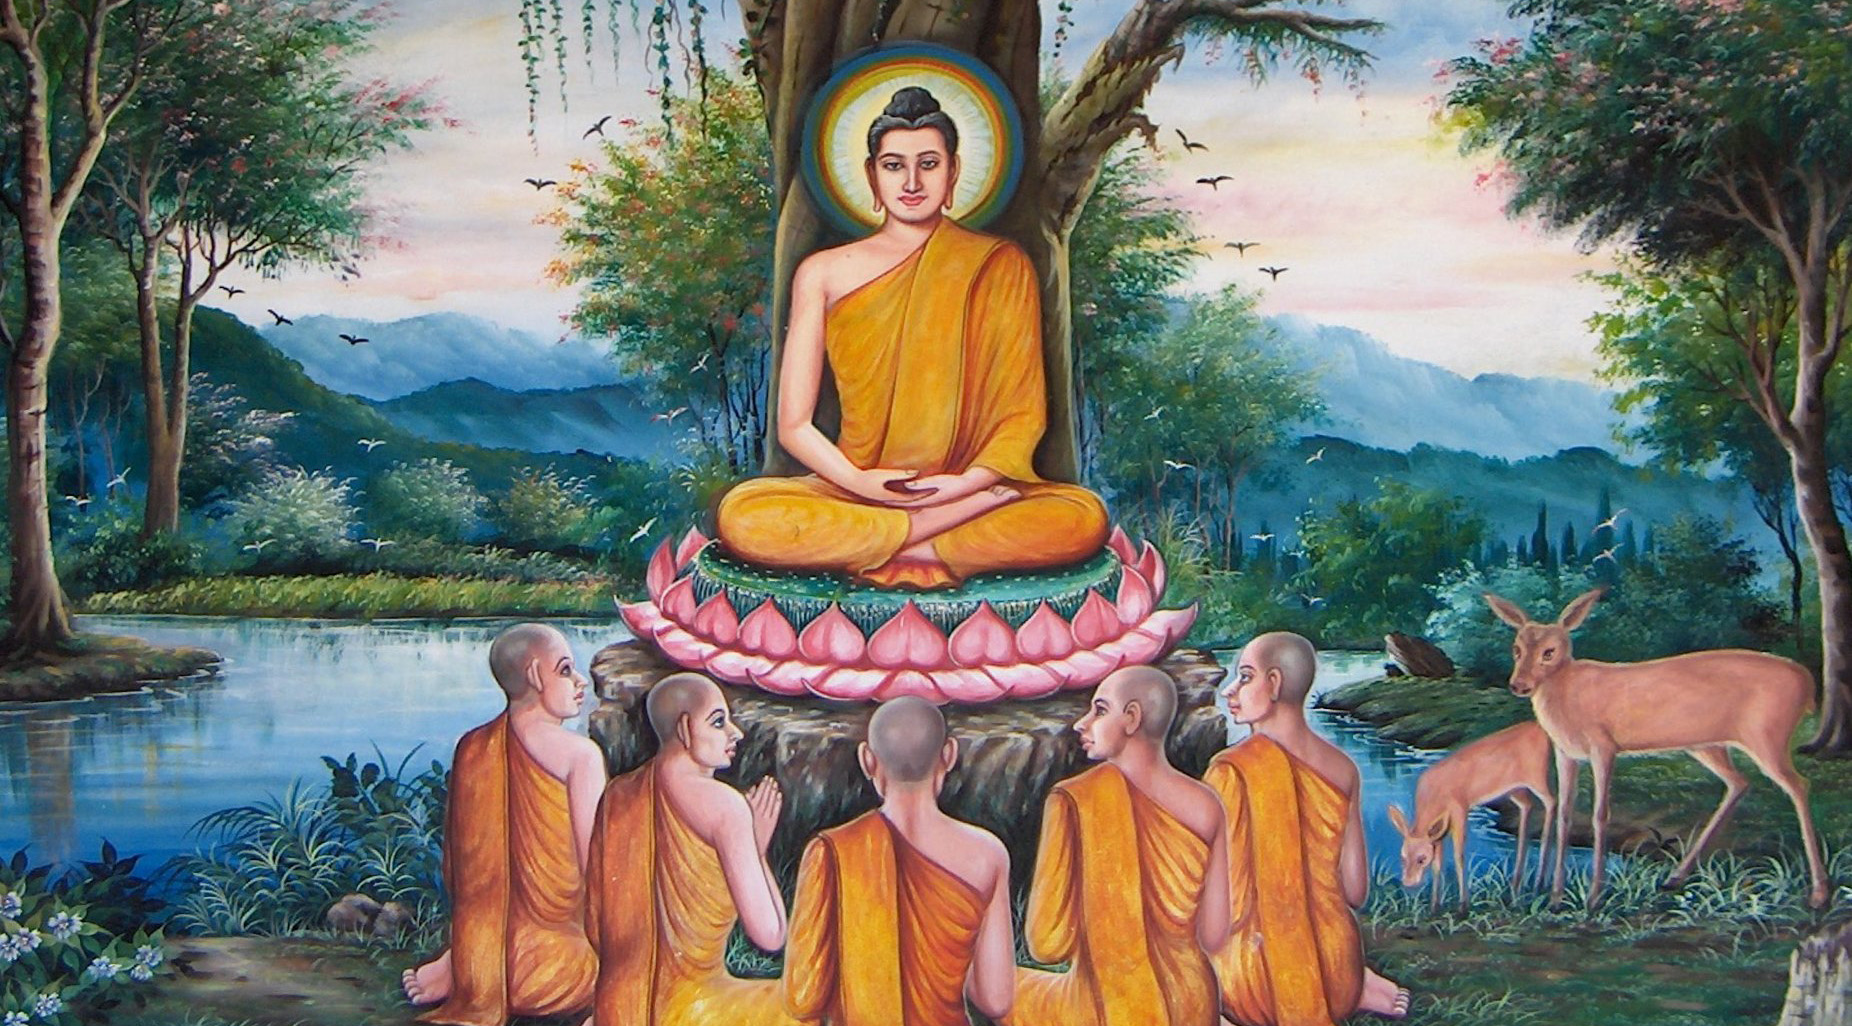 The Four Noble Truths online class, starting April 16